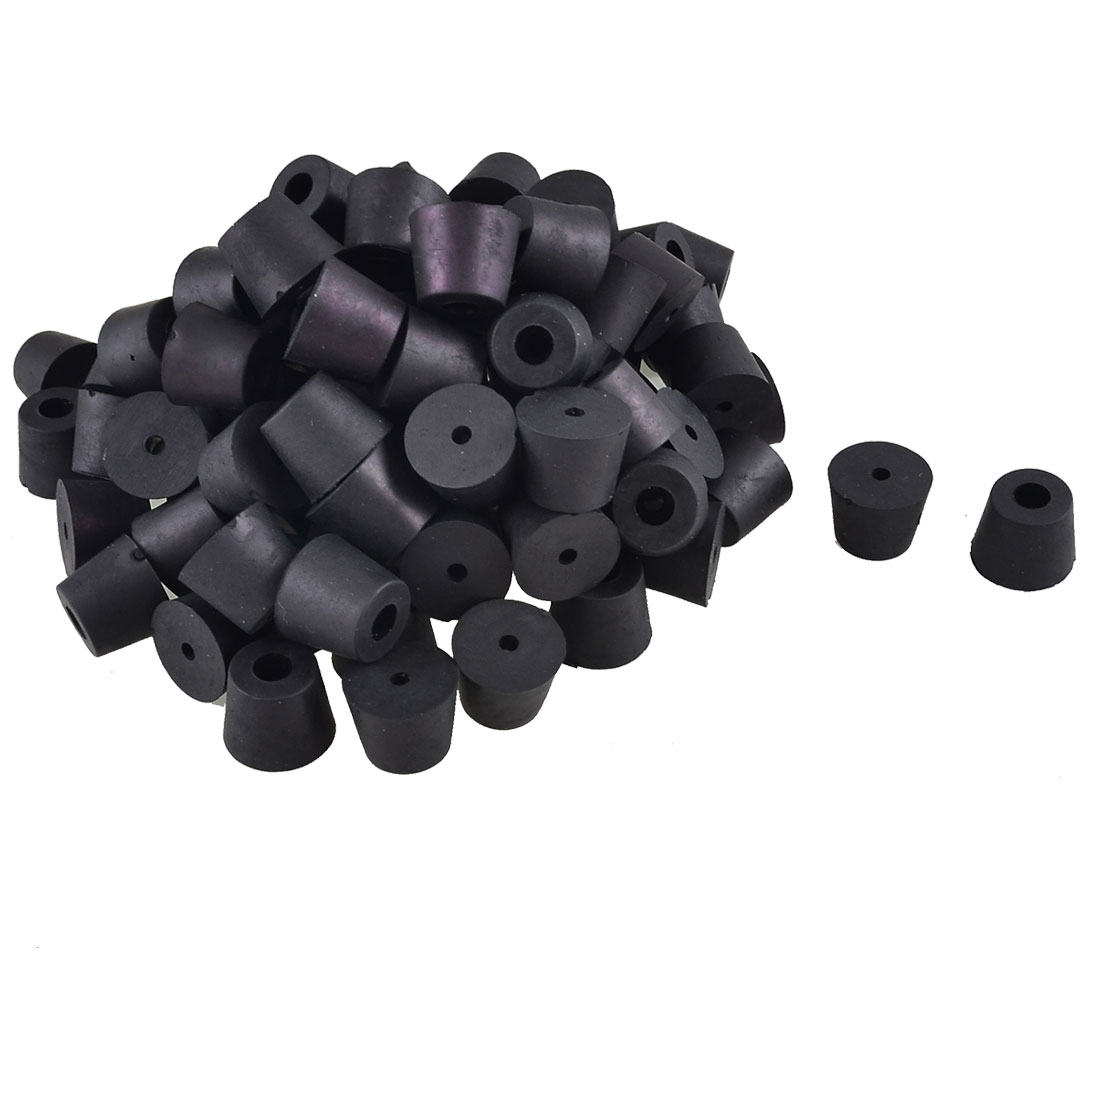 100 Pcs Black Conical Furniture Table Chair Leg Tips End Caps Foot Pad 16mmx10mmx12mm